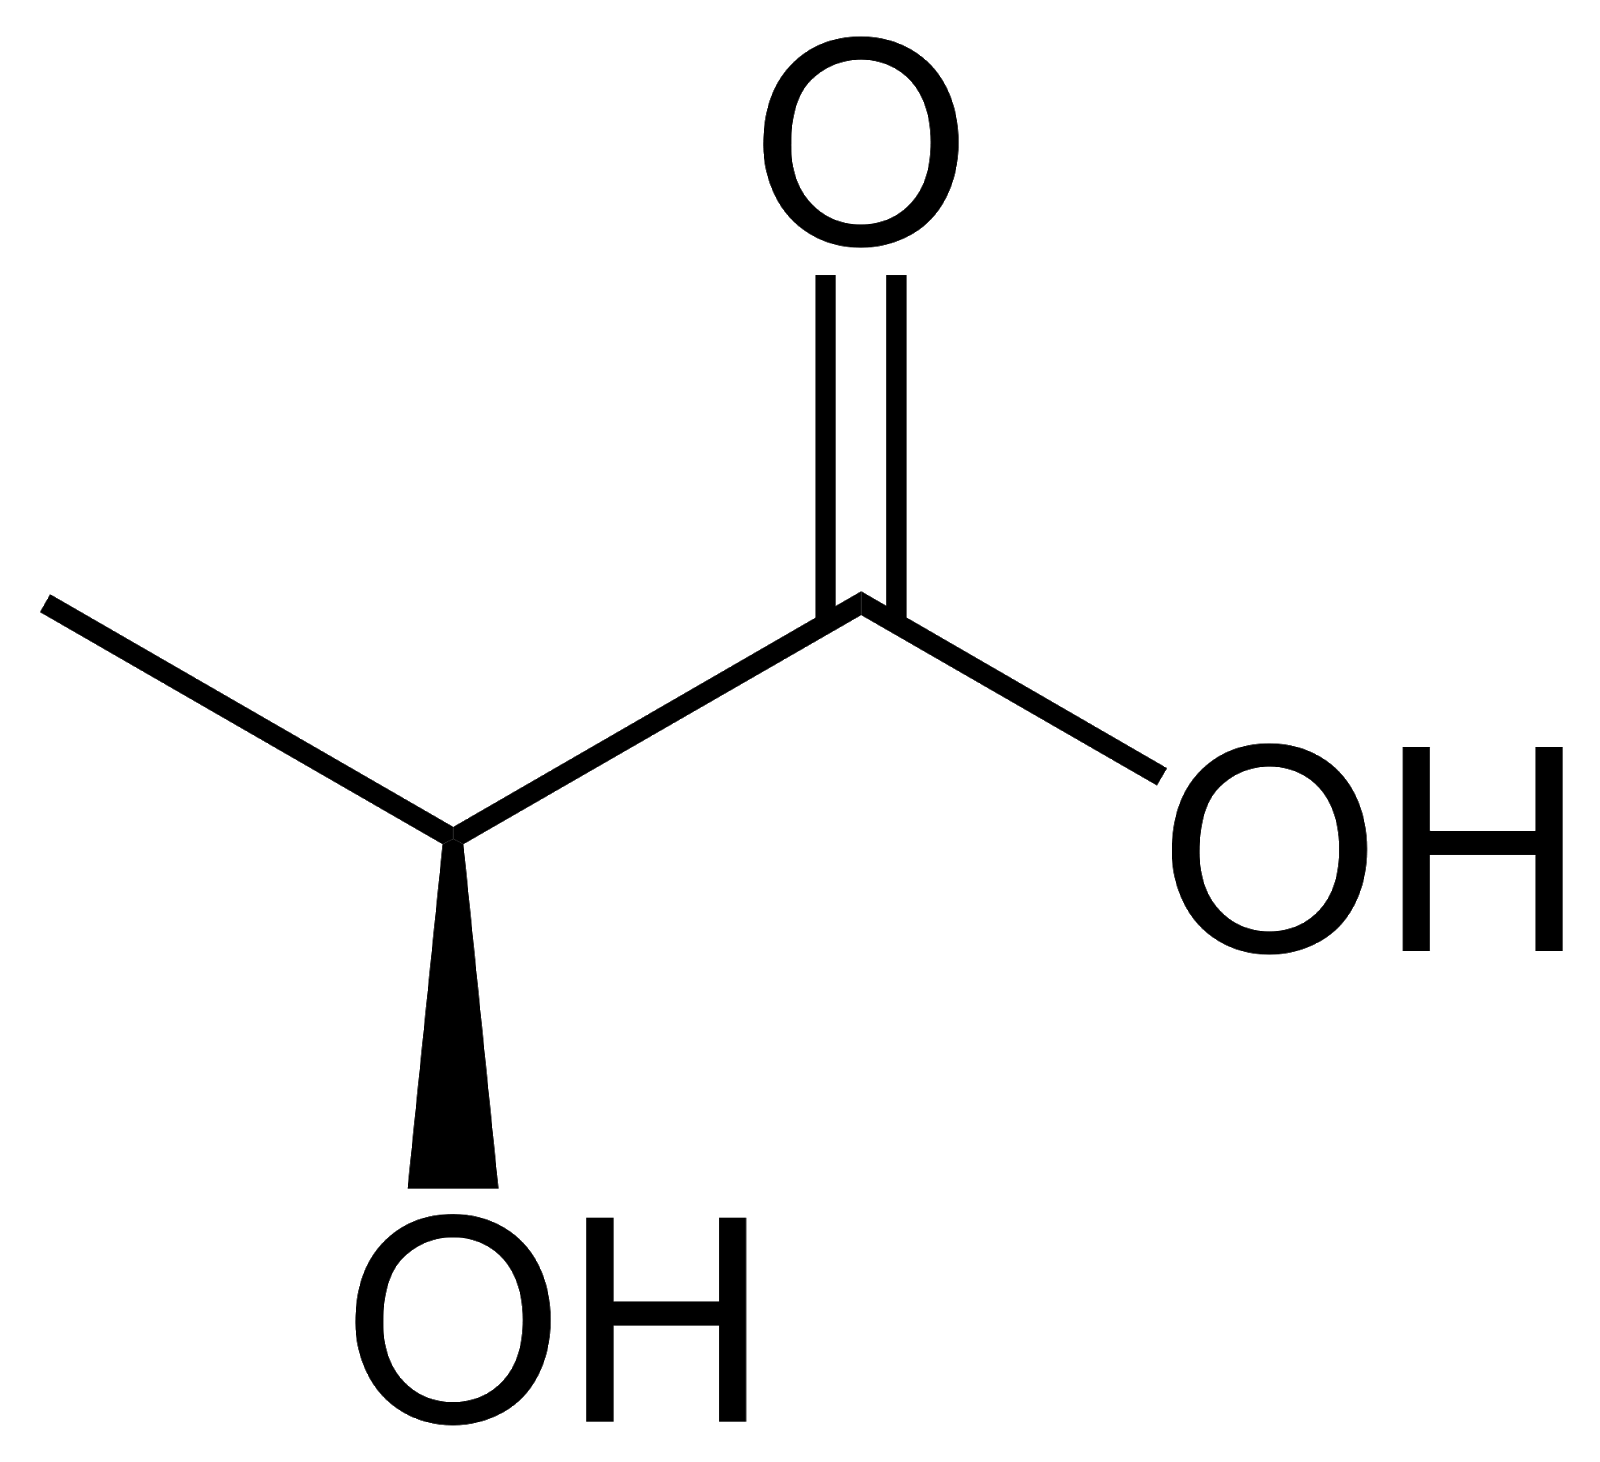 Structural Formula of Lactic Acid